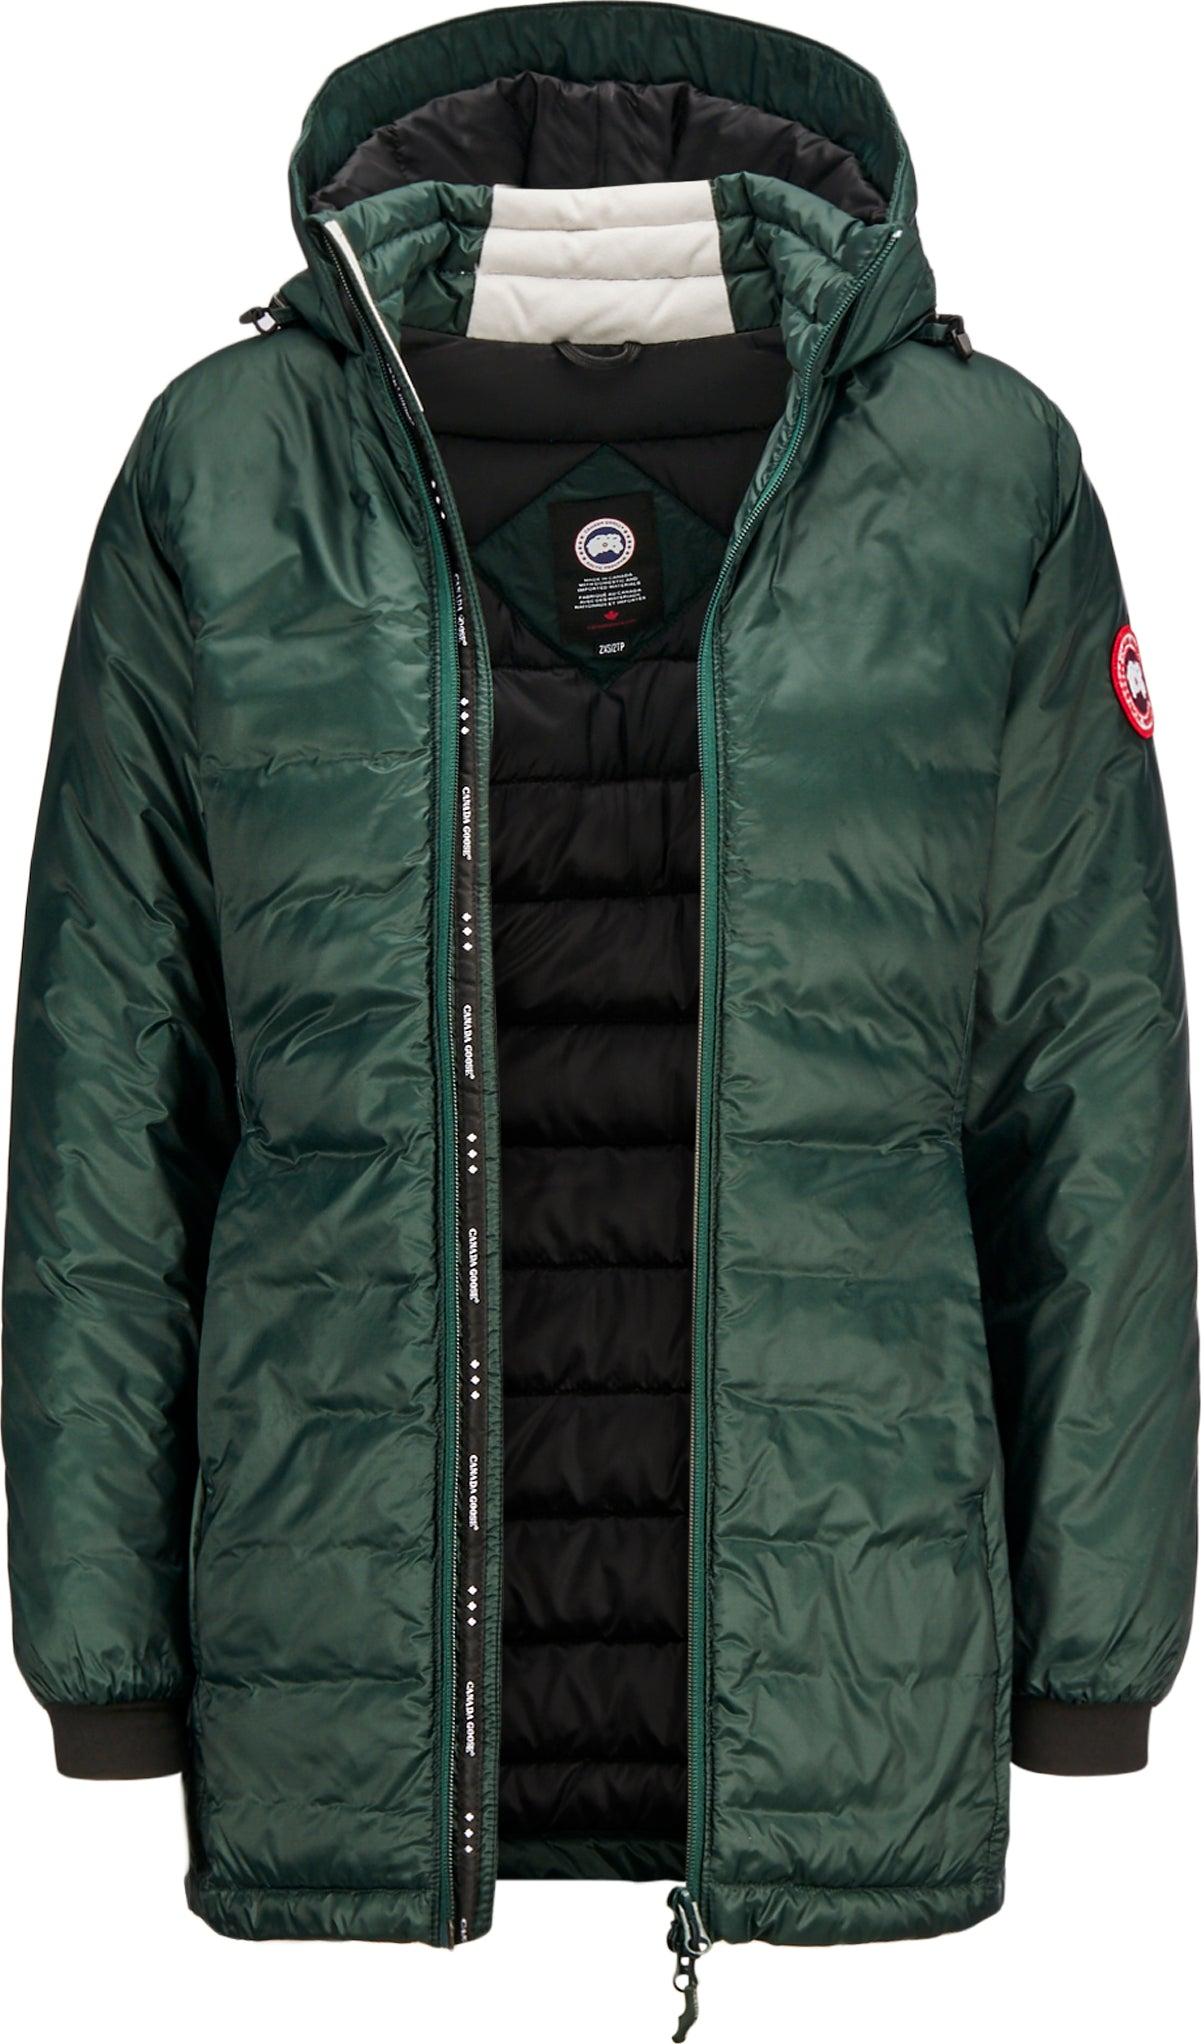 477ceb930 Canada Goose Camp Down Hooded Jacket - Women's